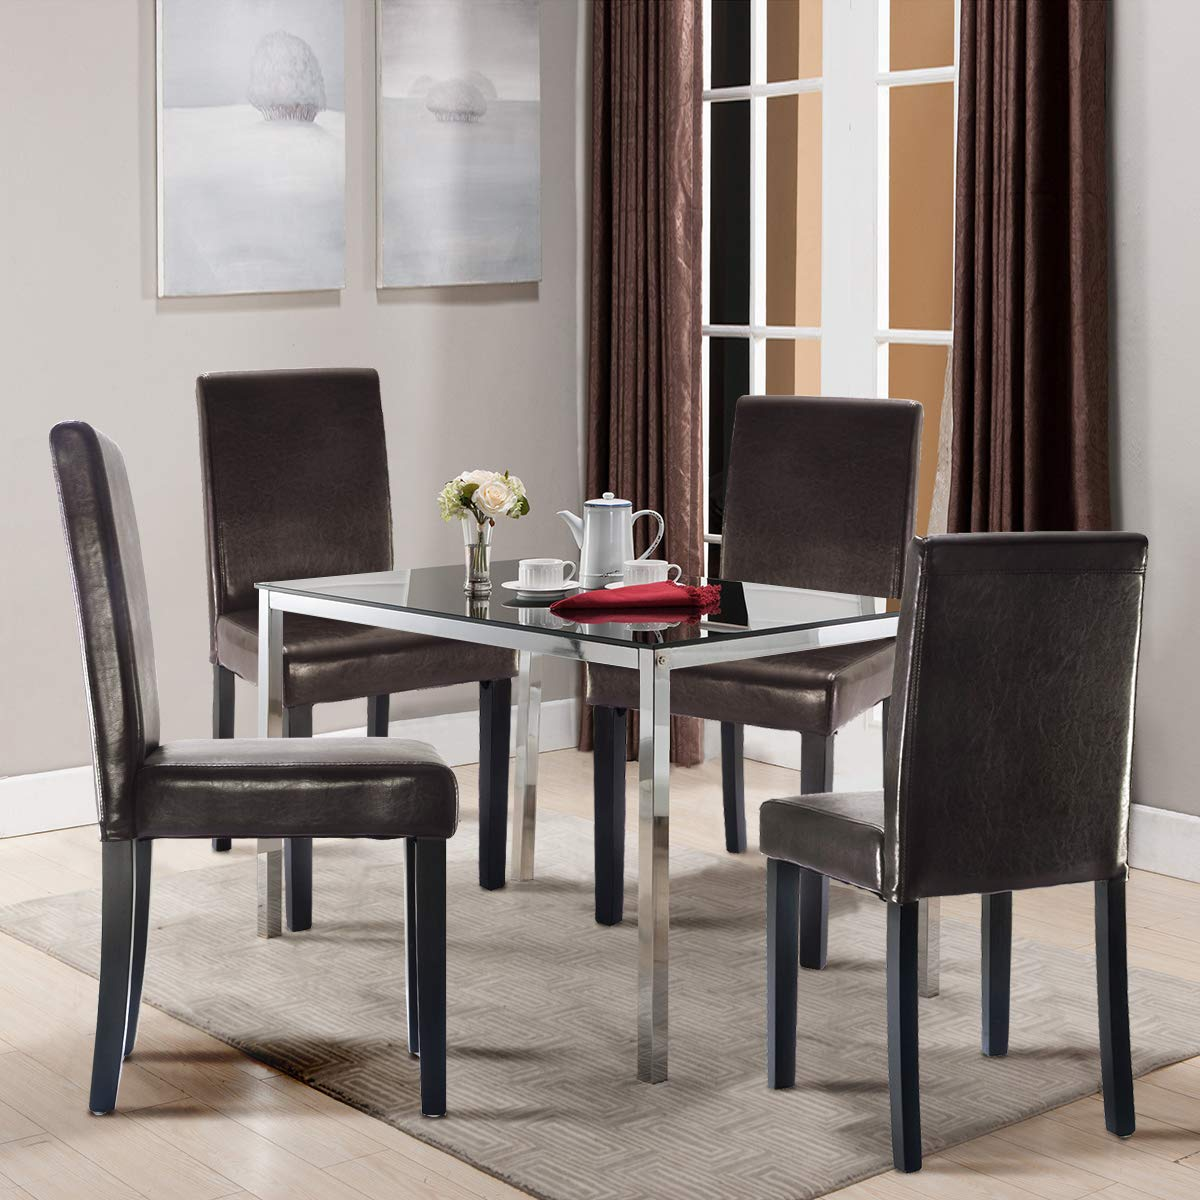 Costway Set of 2 Parson Chairs Elegant Design Leather Modern Dining Chairs Dining Room Kitchen Furniture Urban Style Solid Wood Leatherette Padded Seat Brown